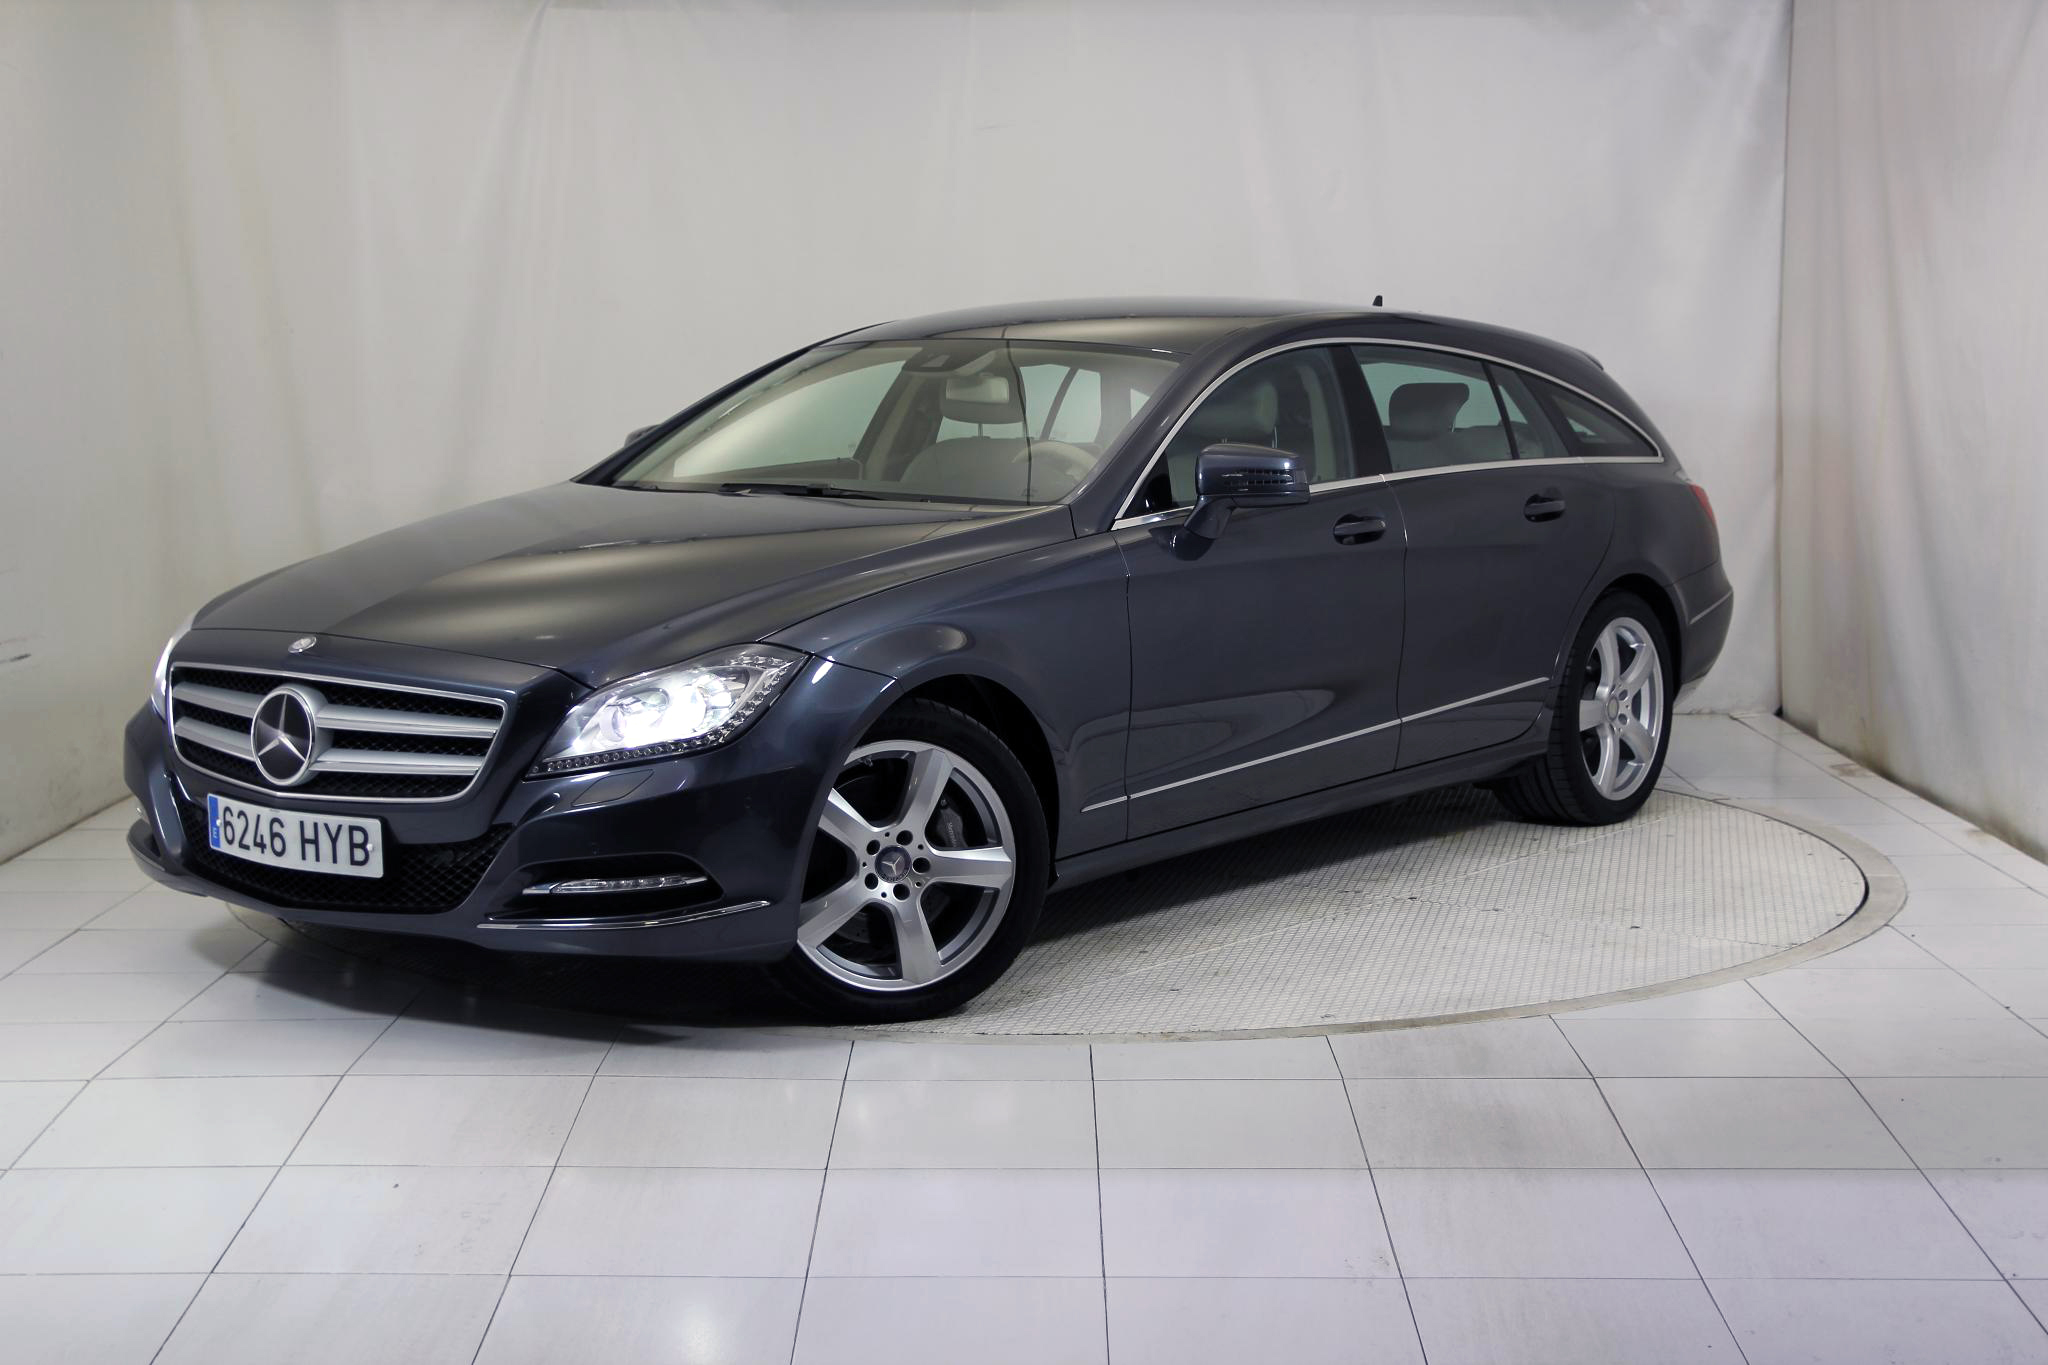 Mercedes-Benz Clase CLS CLS SHOOTING BRAKE 350 CDI AUTO imagen 2